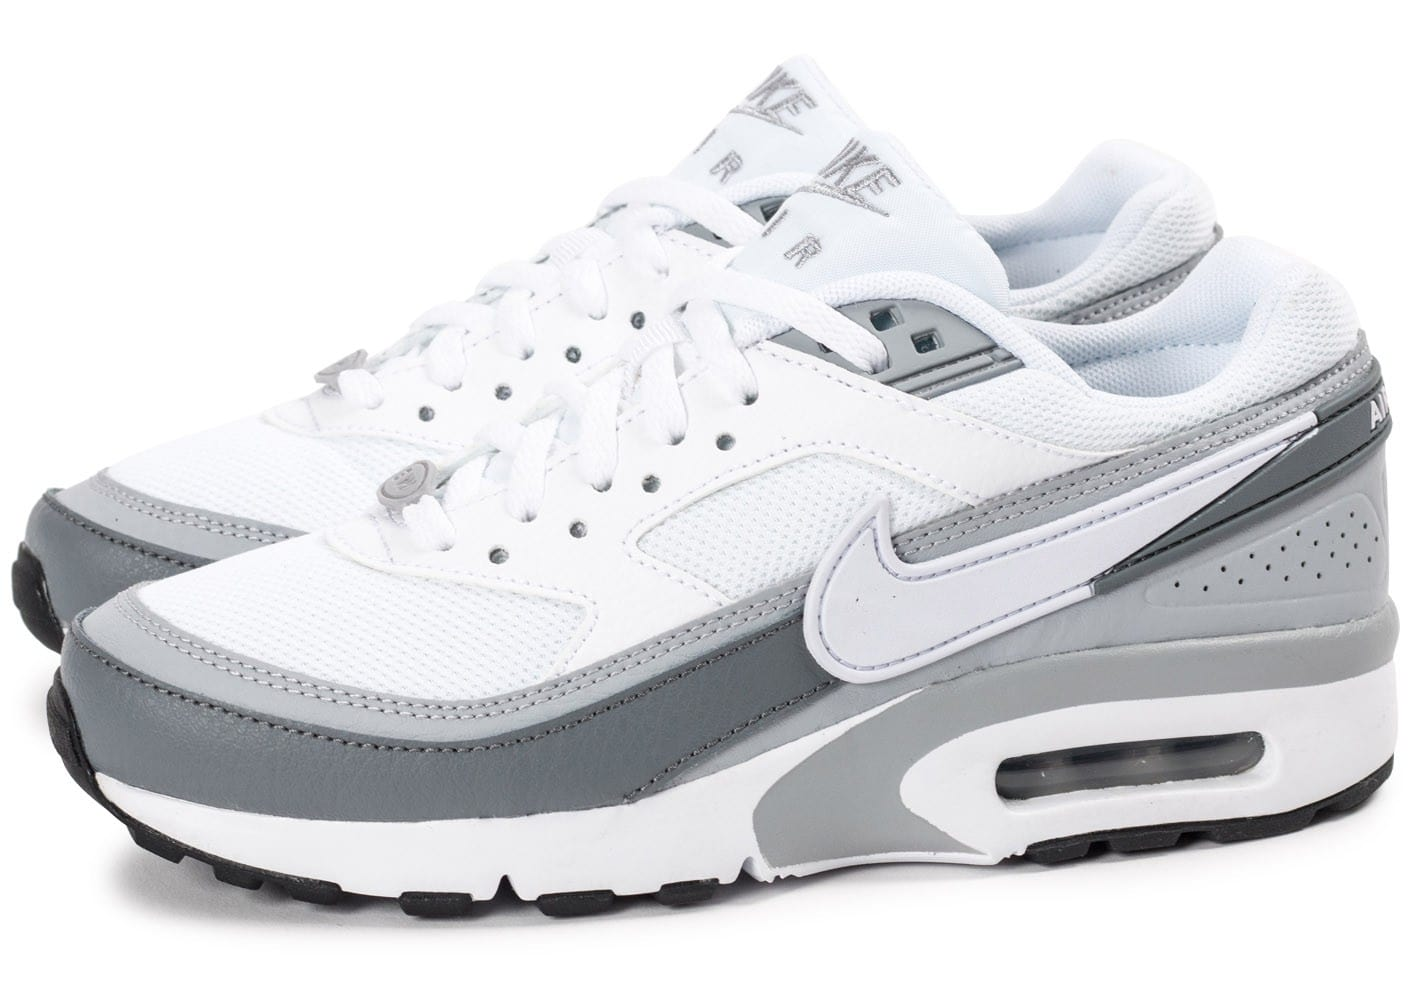 nike air max bw junior blanche et grise chaussures toutes les baskets sold es chausport. Black Bedroom Furniture Sets. Home Design Ideas